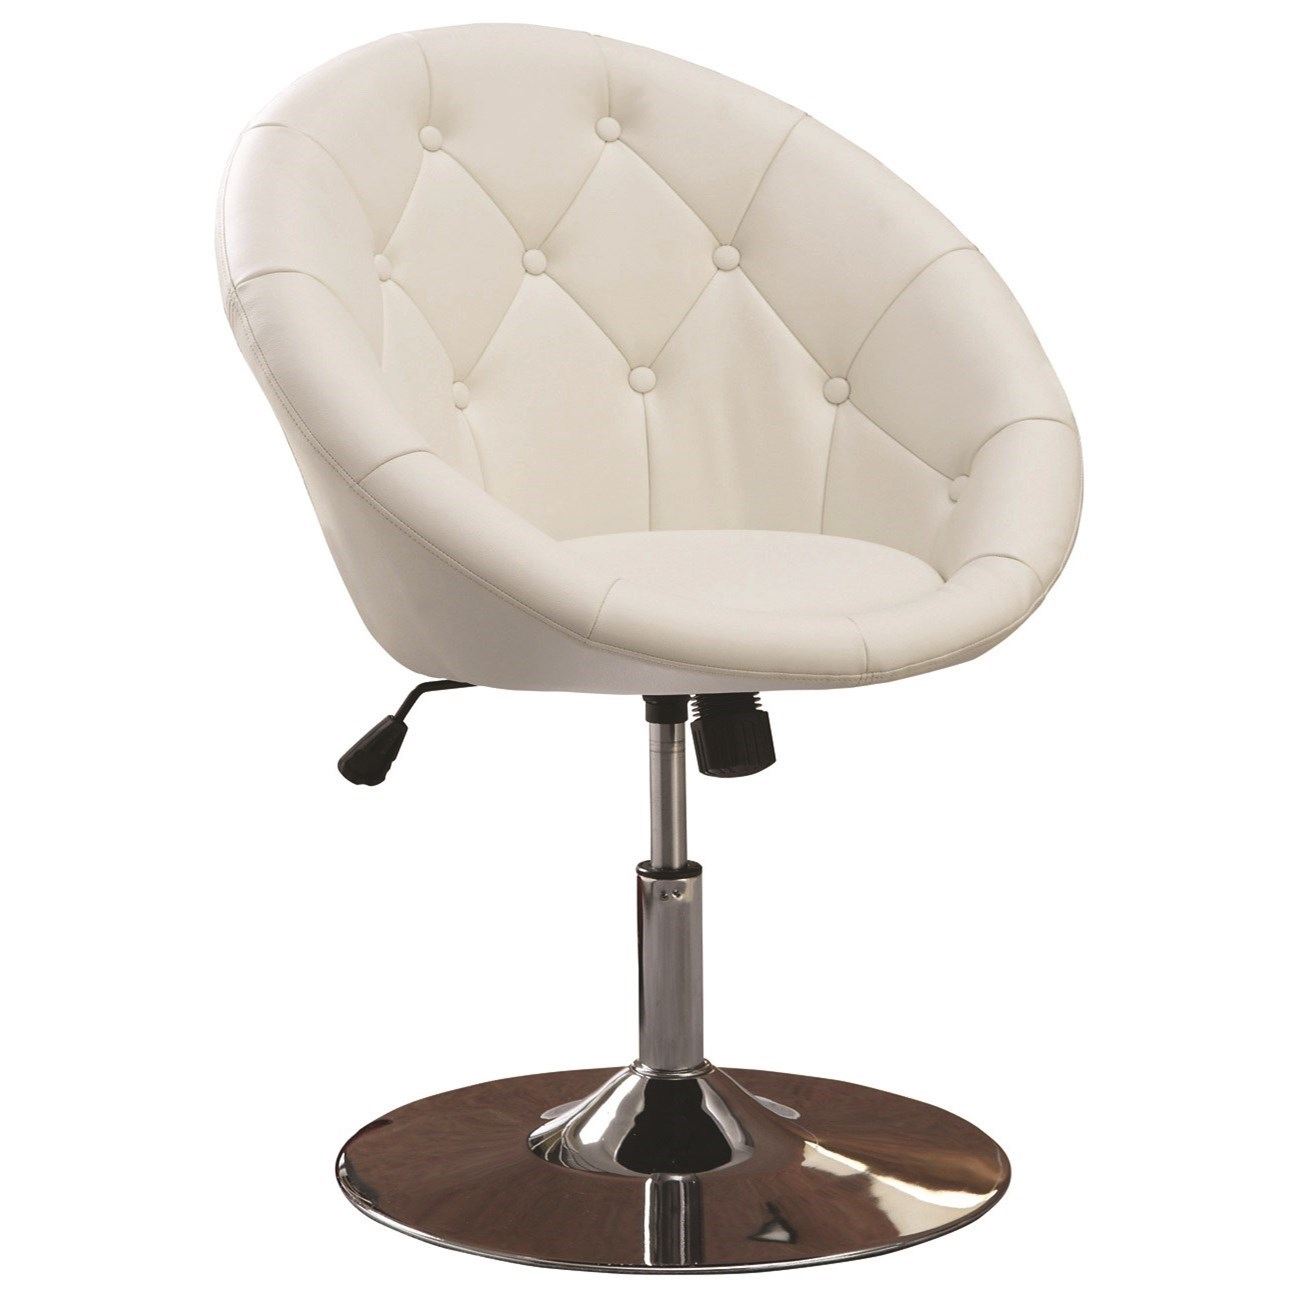 Dining Chairs and Bar Stools Swivel Chair (White) by Coaster at Northeast Factory Direct